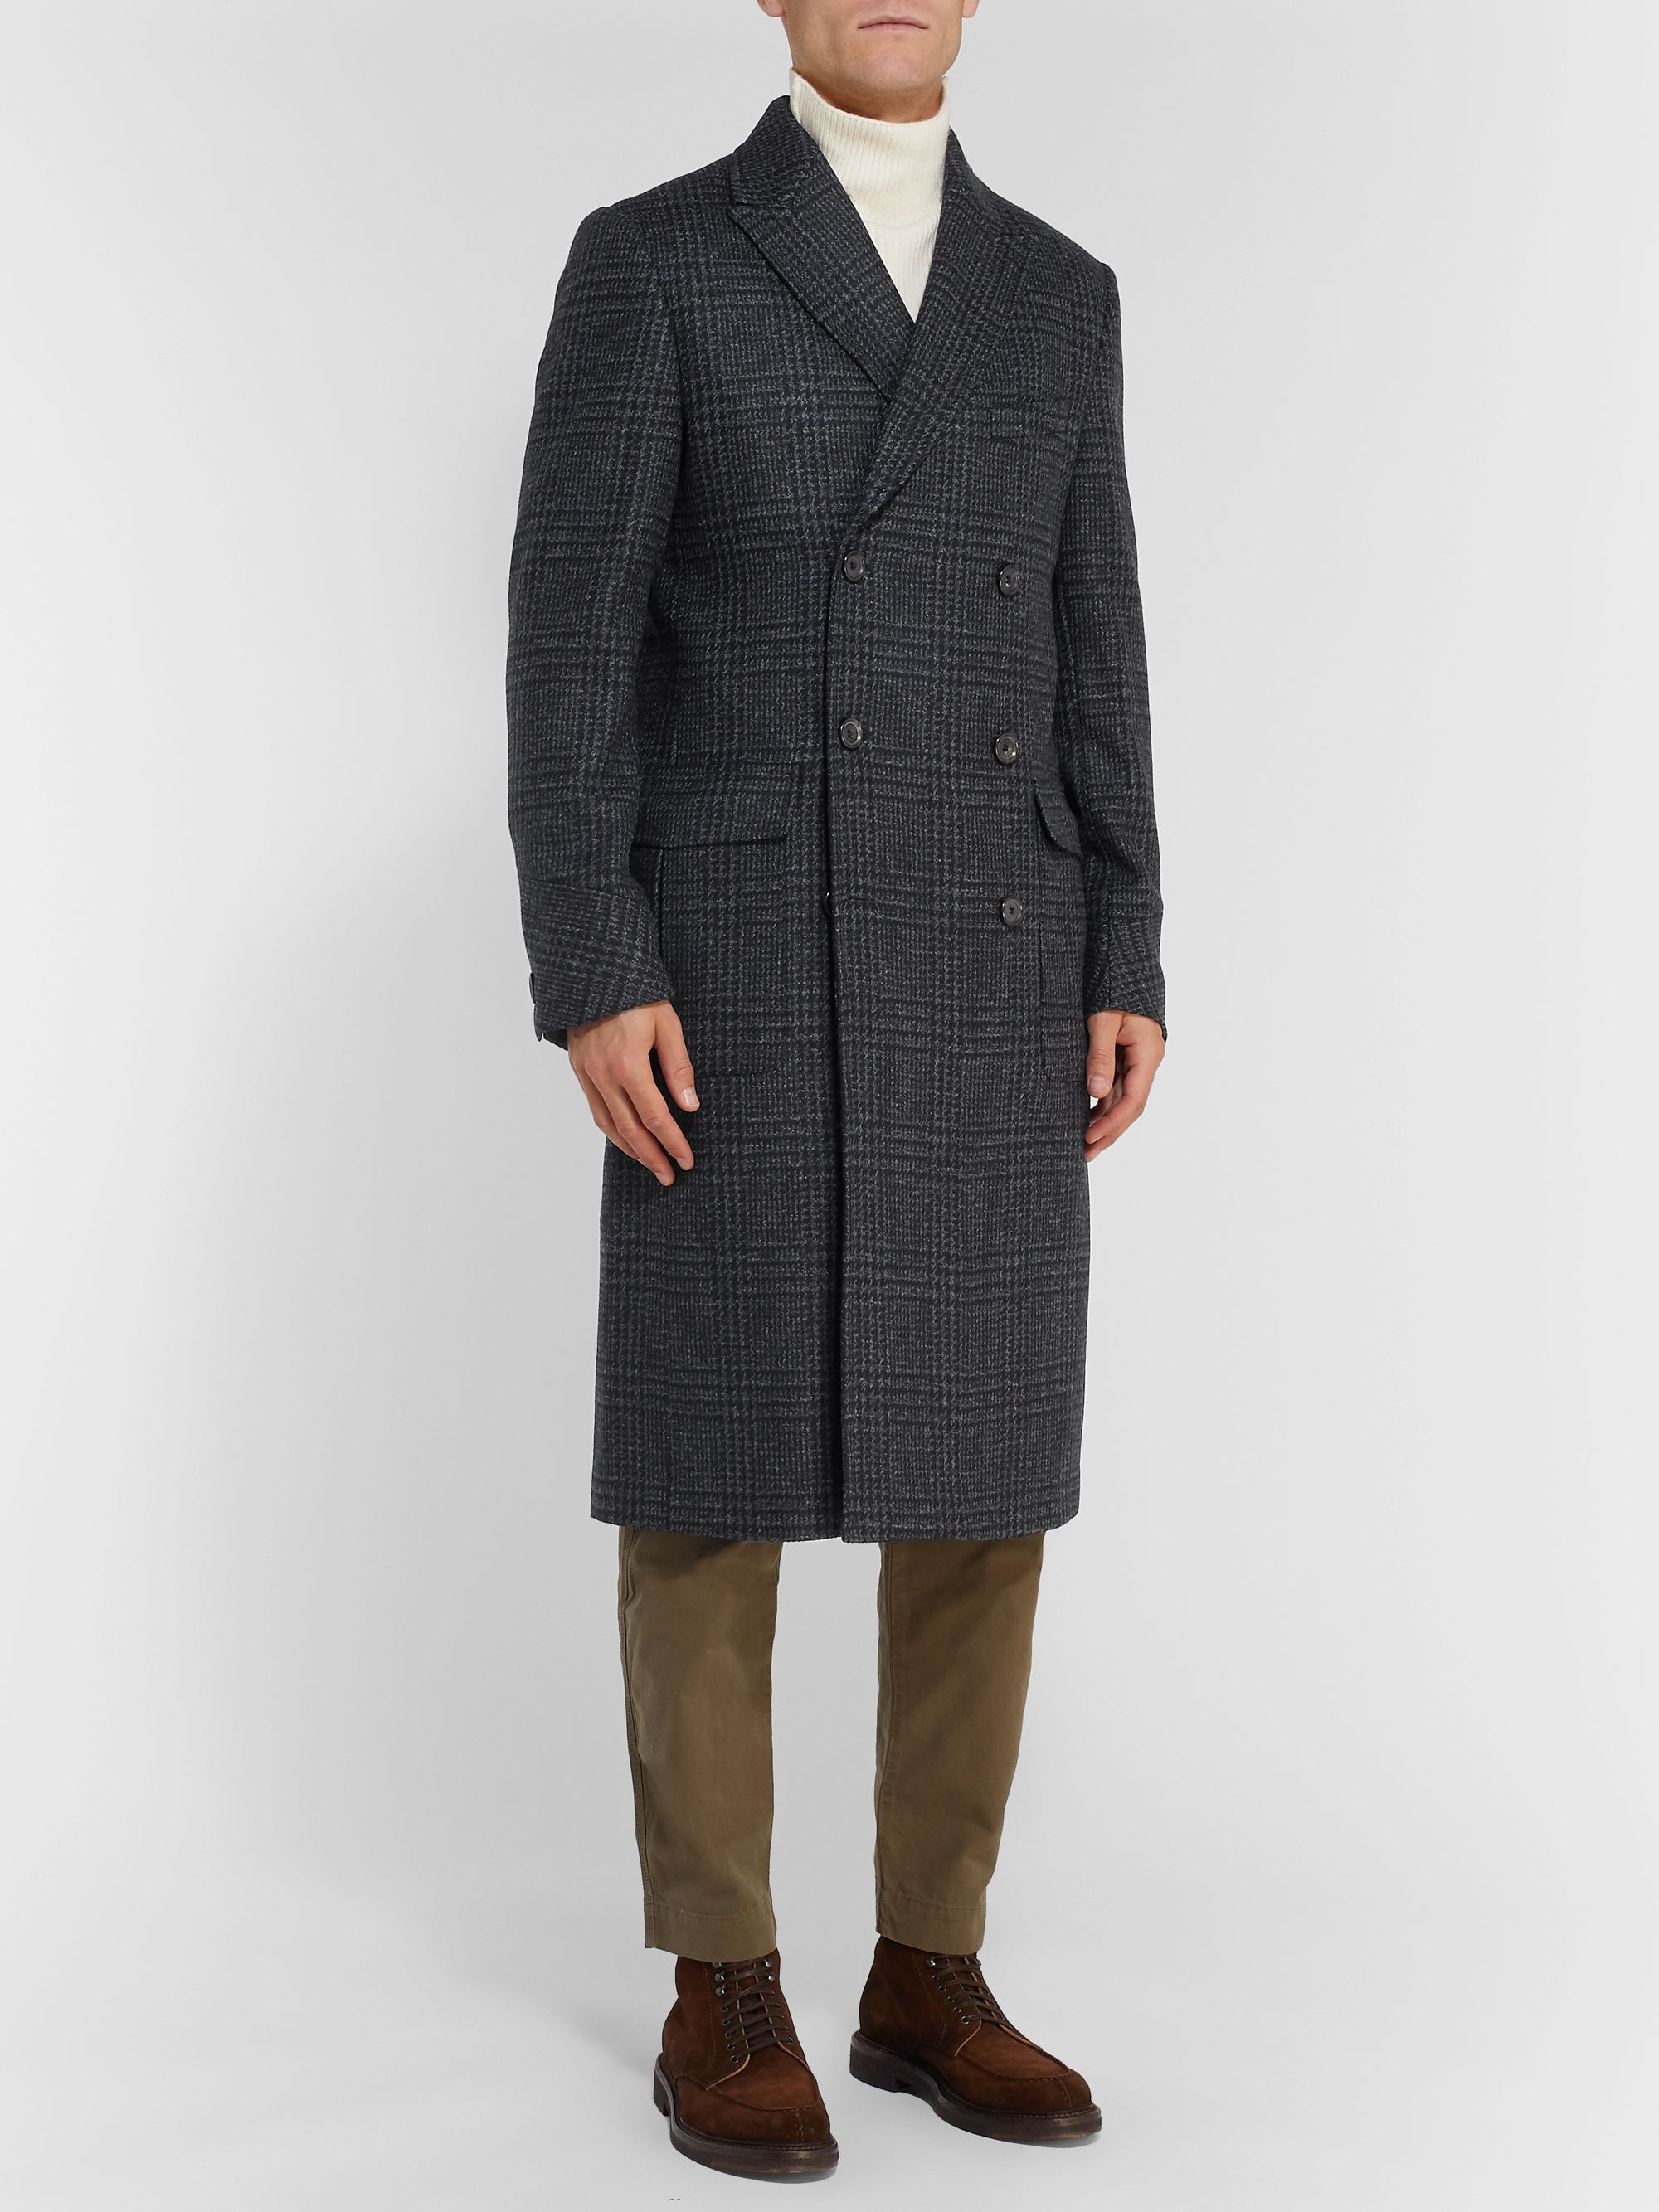 Oliver Spencer Double-Breasted Prince of Wales Checked Lambswool Coat